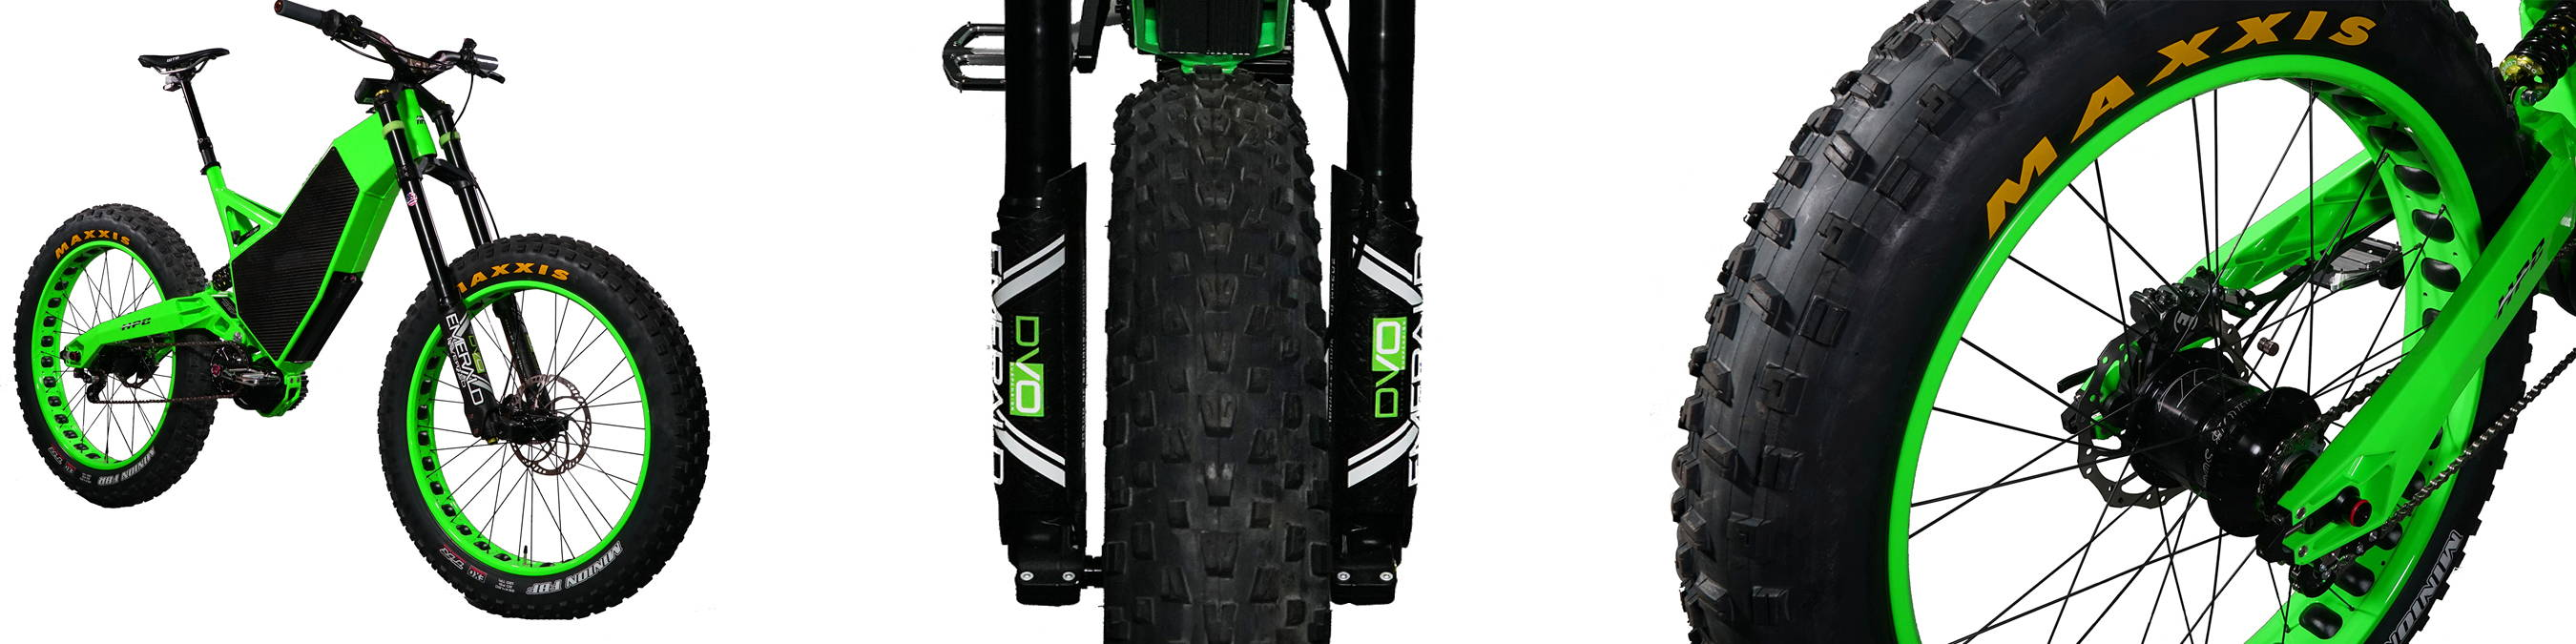 2b902bf5283 ... and most importantly the custom fabricated DVO Emerald fat fork and  rear shock, work together to make this the most INSANE bike experience ever!